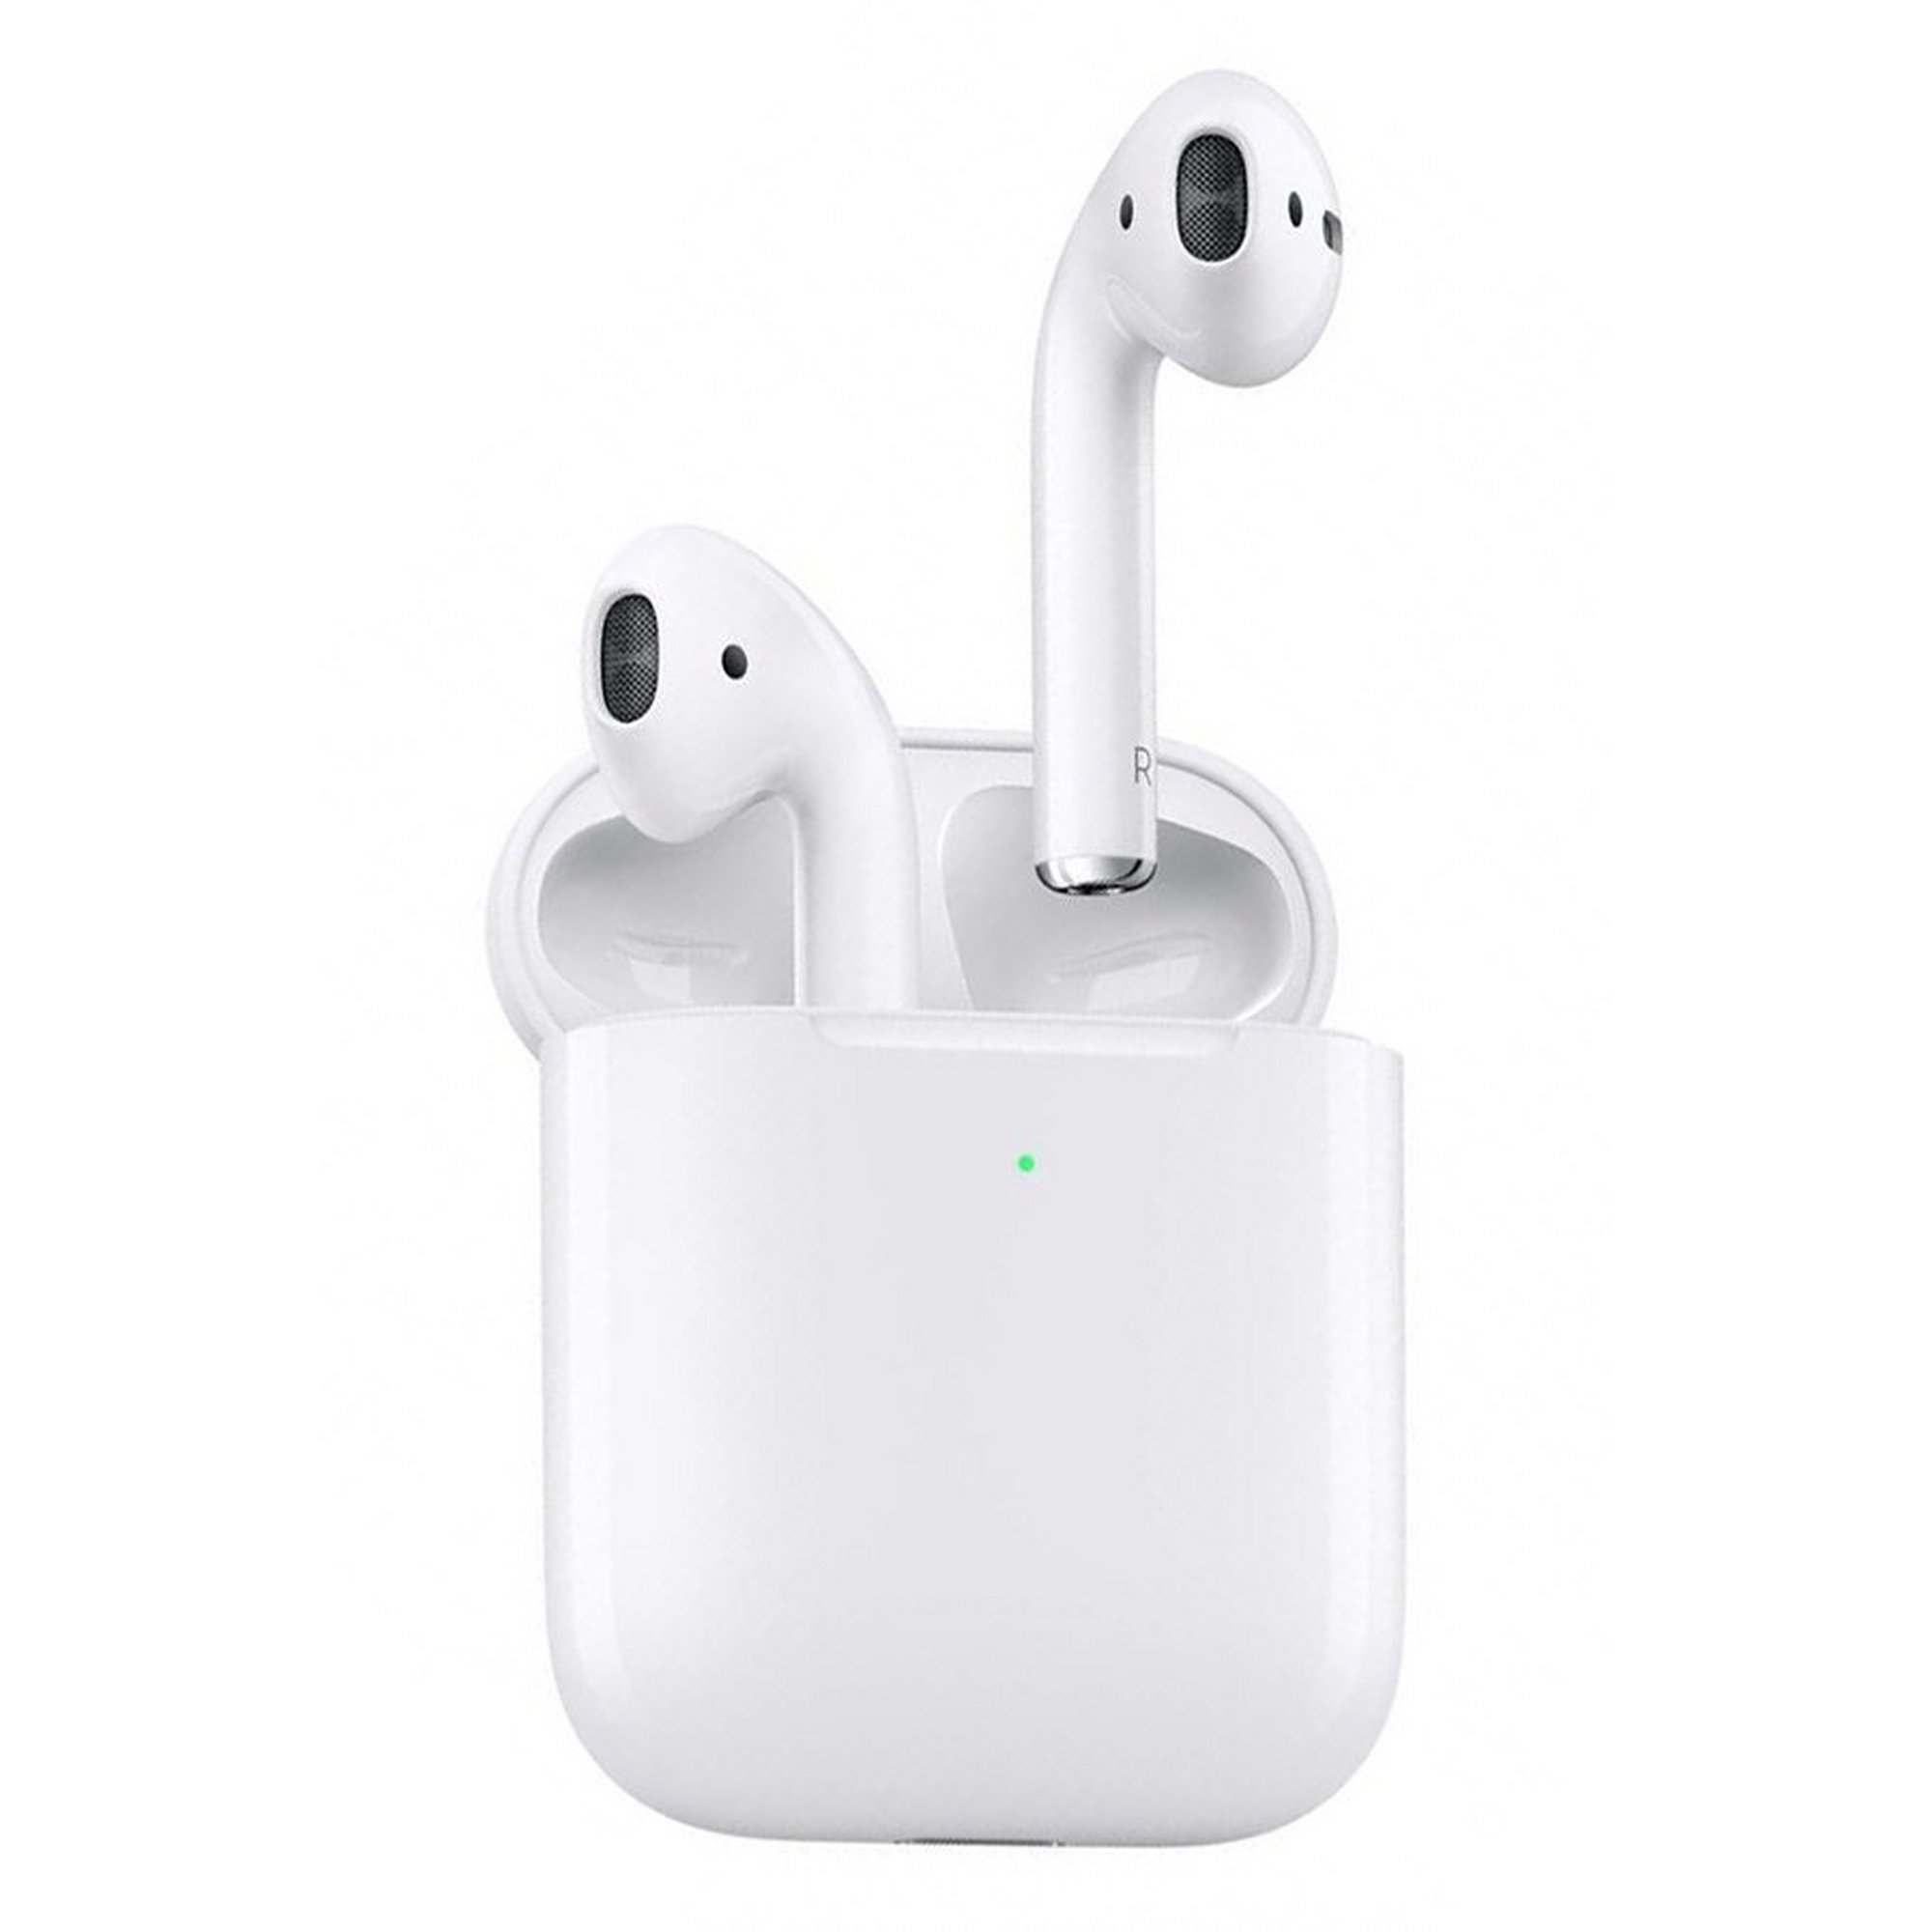 Image of Apple AirPods 2nd Gen with Wireless Charging Case